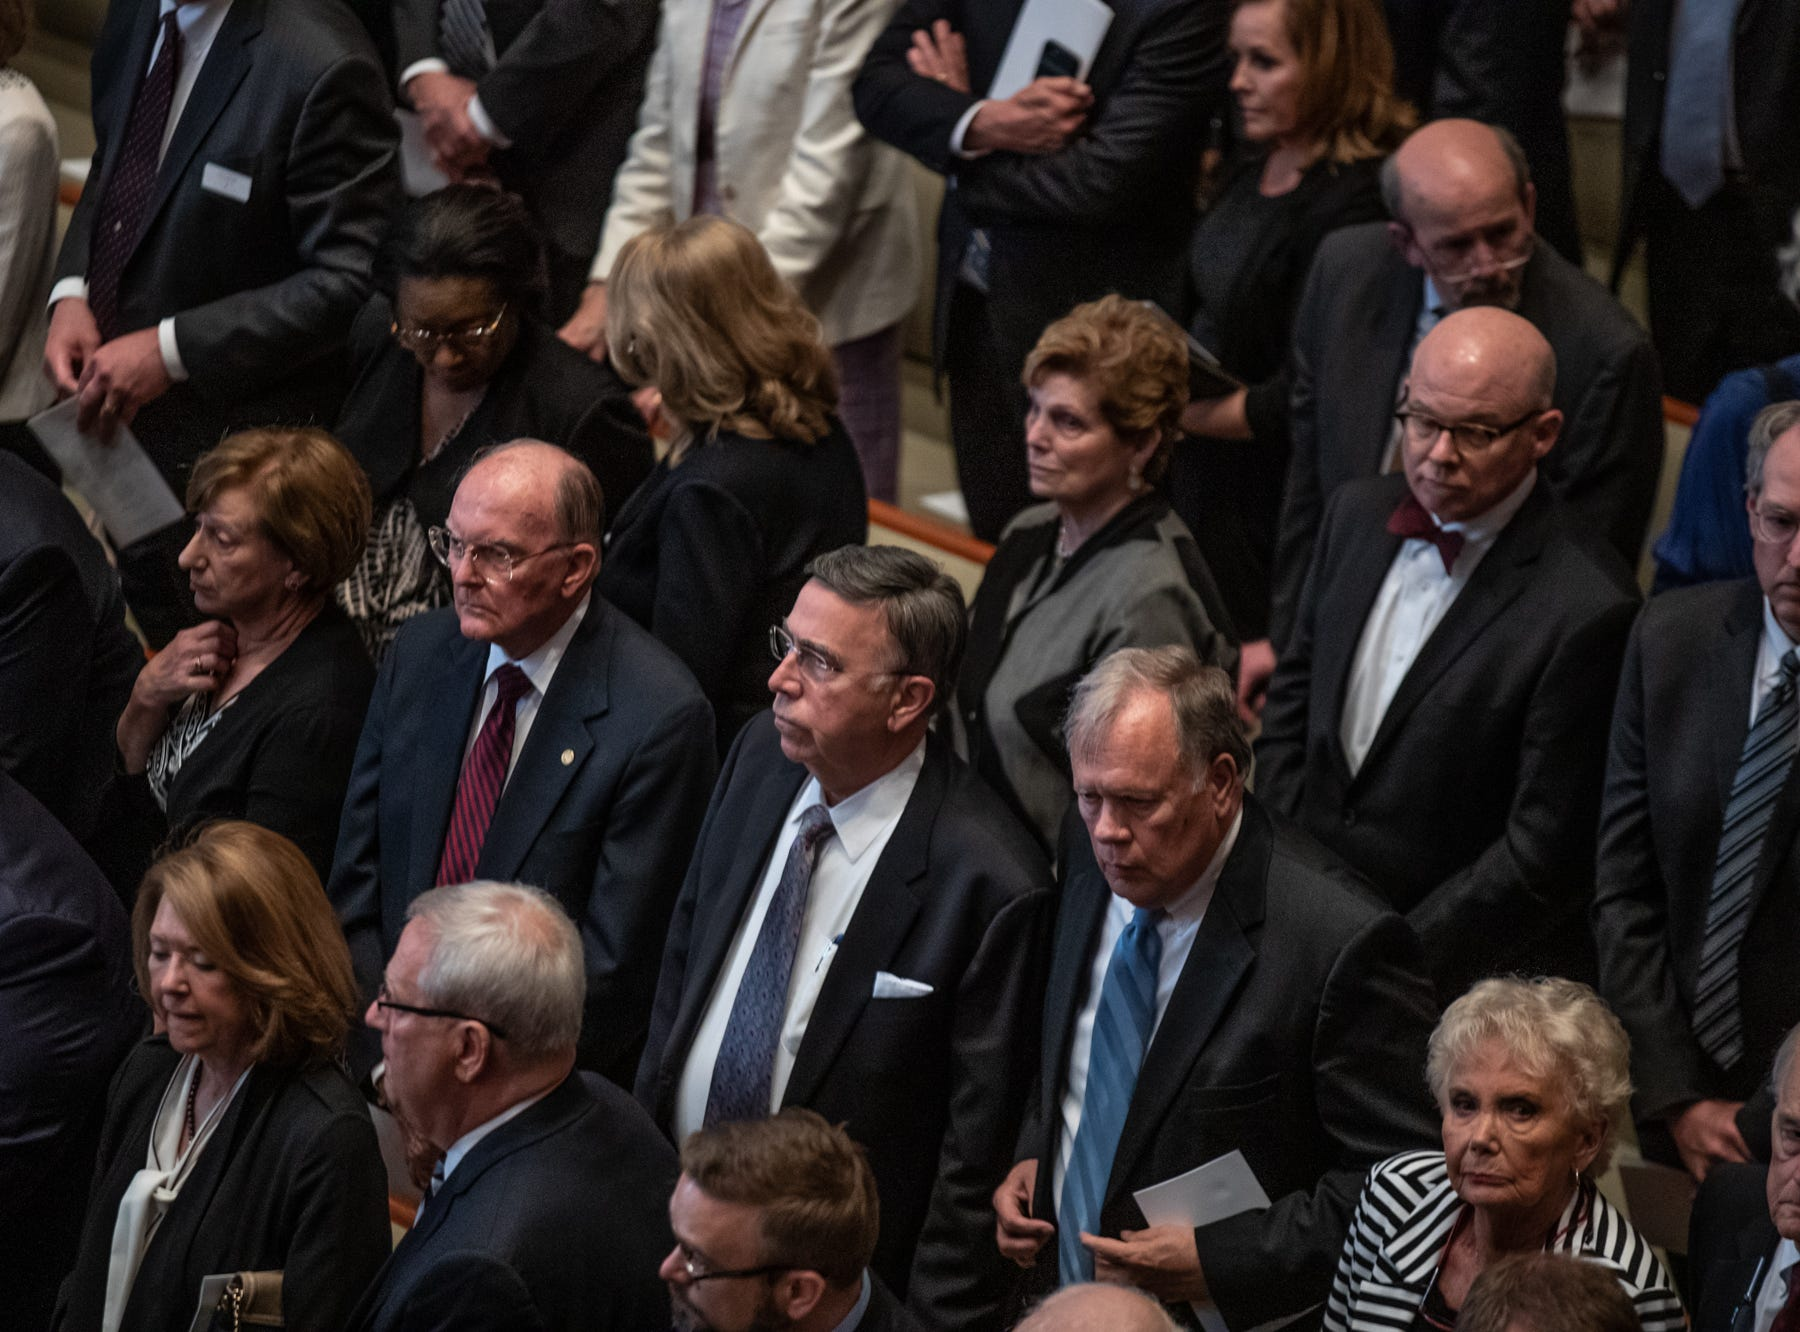 Political figures, former media, family and friends pay tribute to former U.S. Sen. Richard Lugar during a memorial service held at Saint Luke's United Methodist Church in Indianapolis, on Wednesday, May 15, 2019. Lugar served as mayor of Indianapolis from 1968 to 1975 and U.S. senator from 1977 to 2013. He died April 28, 2019, at the age of 87.